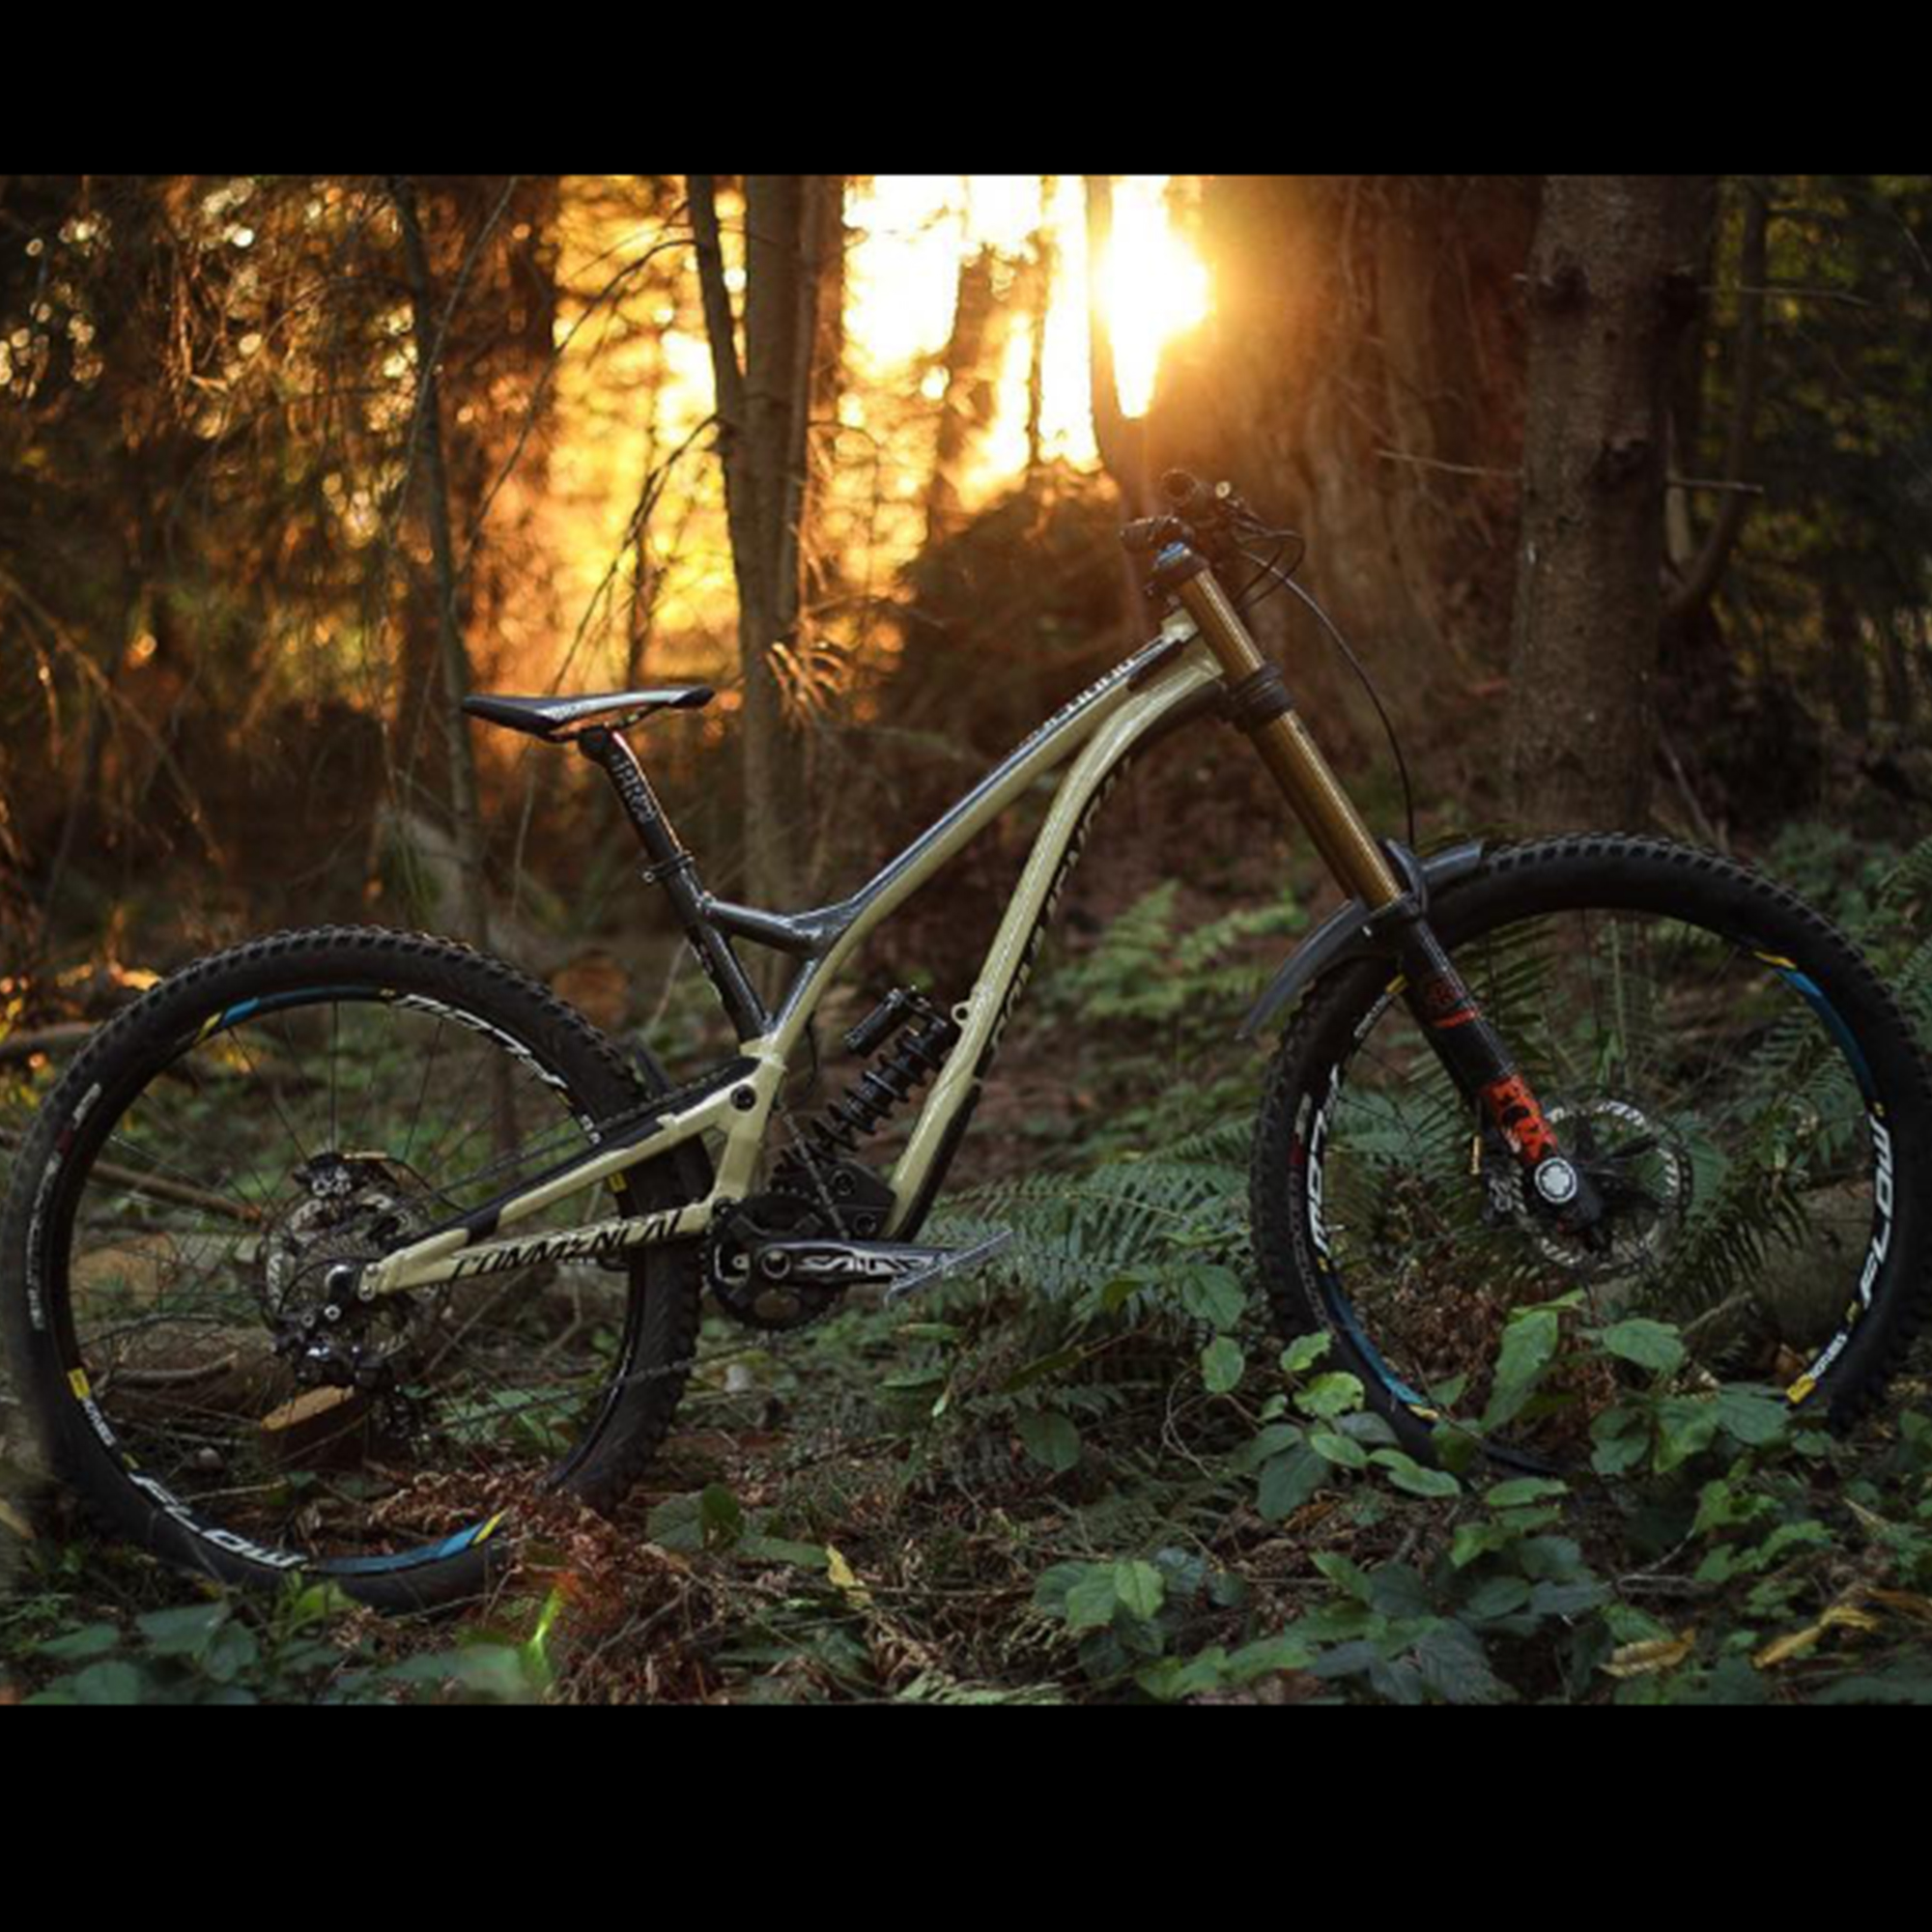 ERIC HARTLEY | COMMENCAL SUPREME DH 4.3